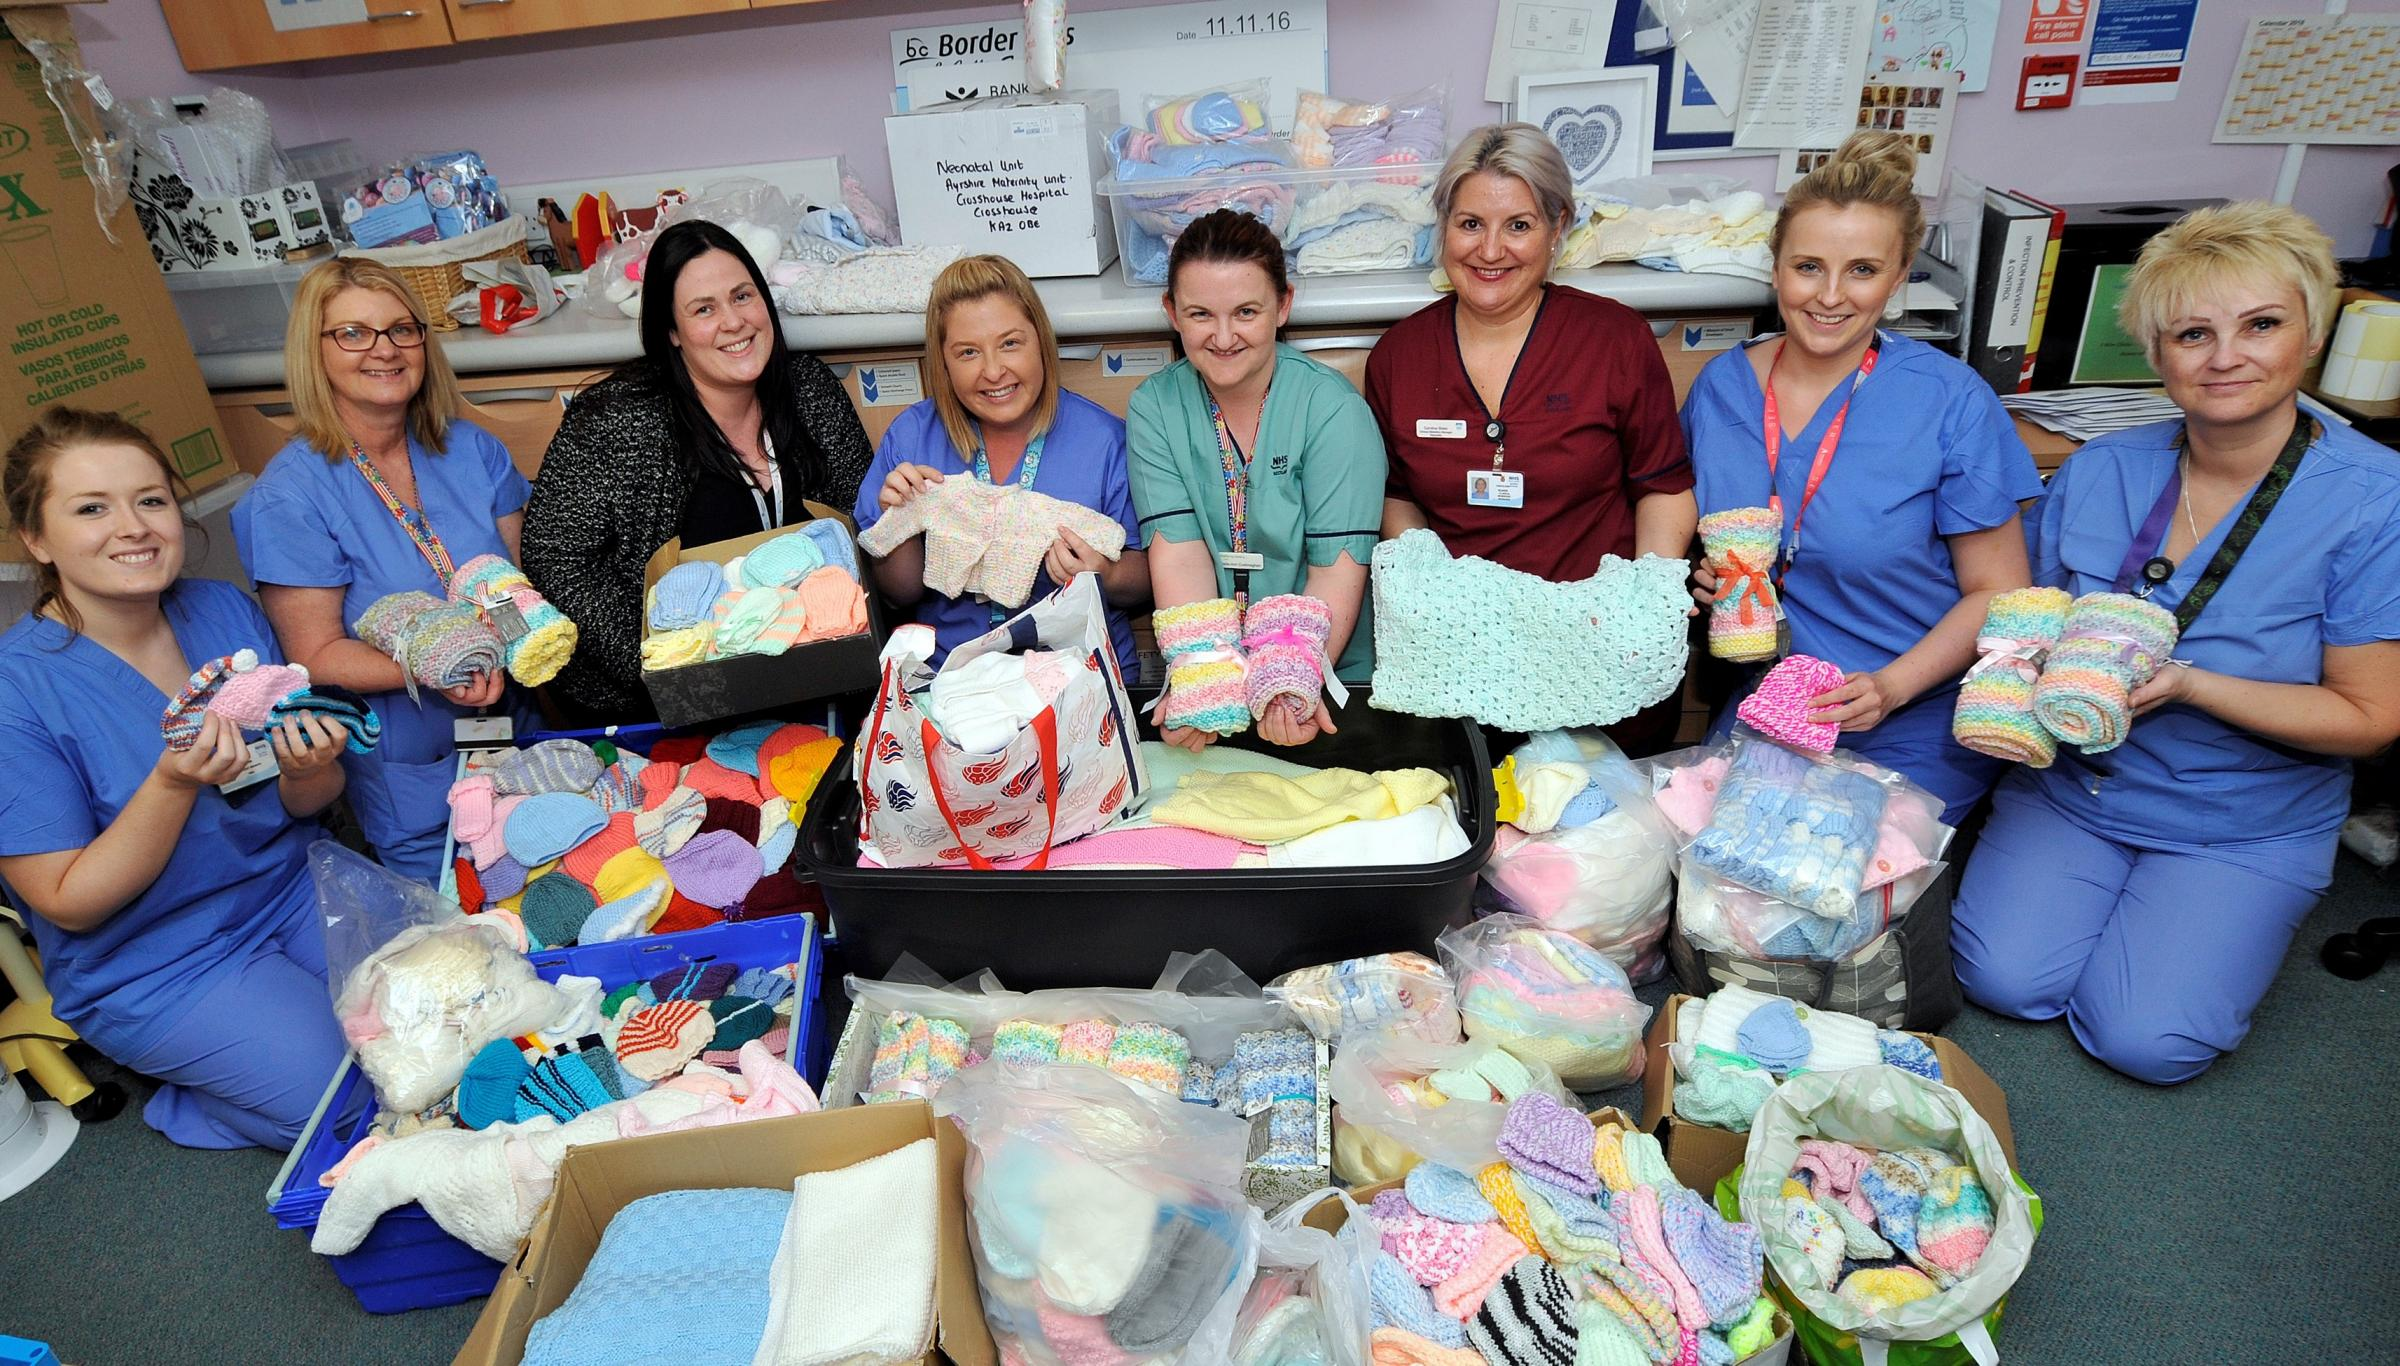 Ayrshire Maternity Unit overwhelmed by knitted gifts..